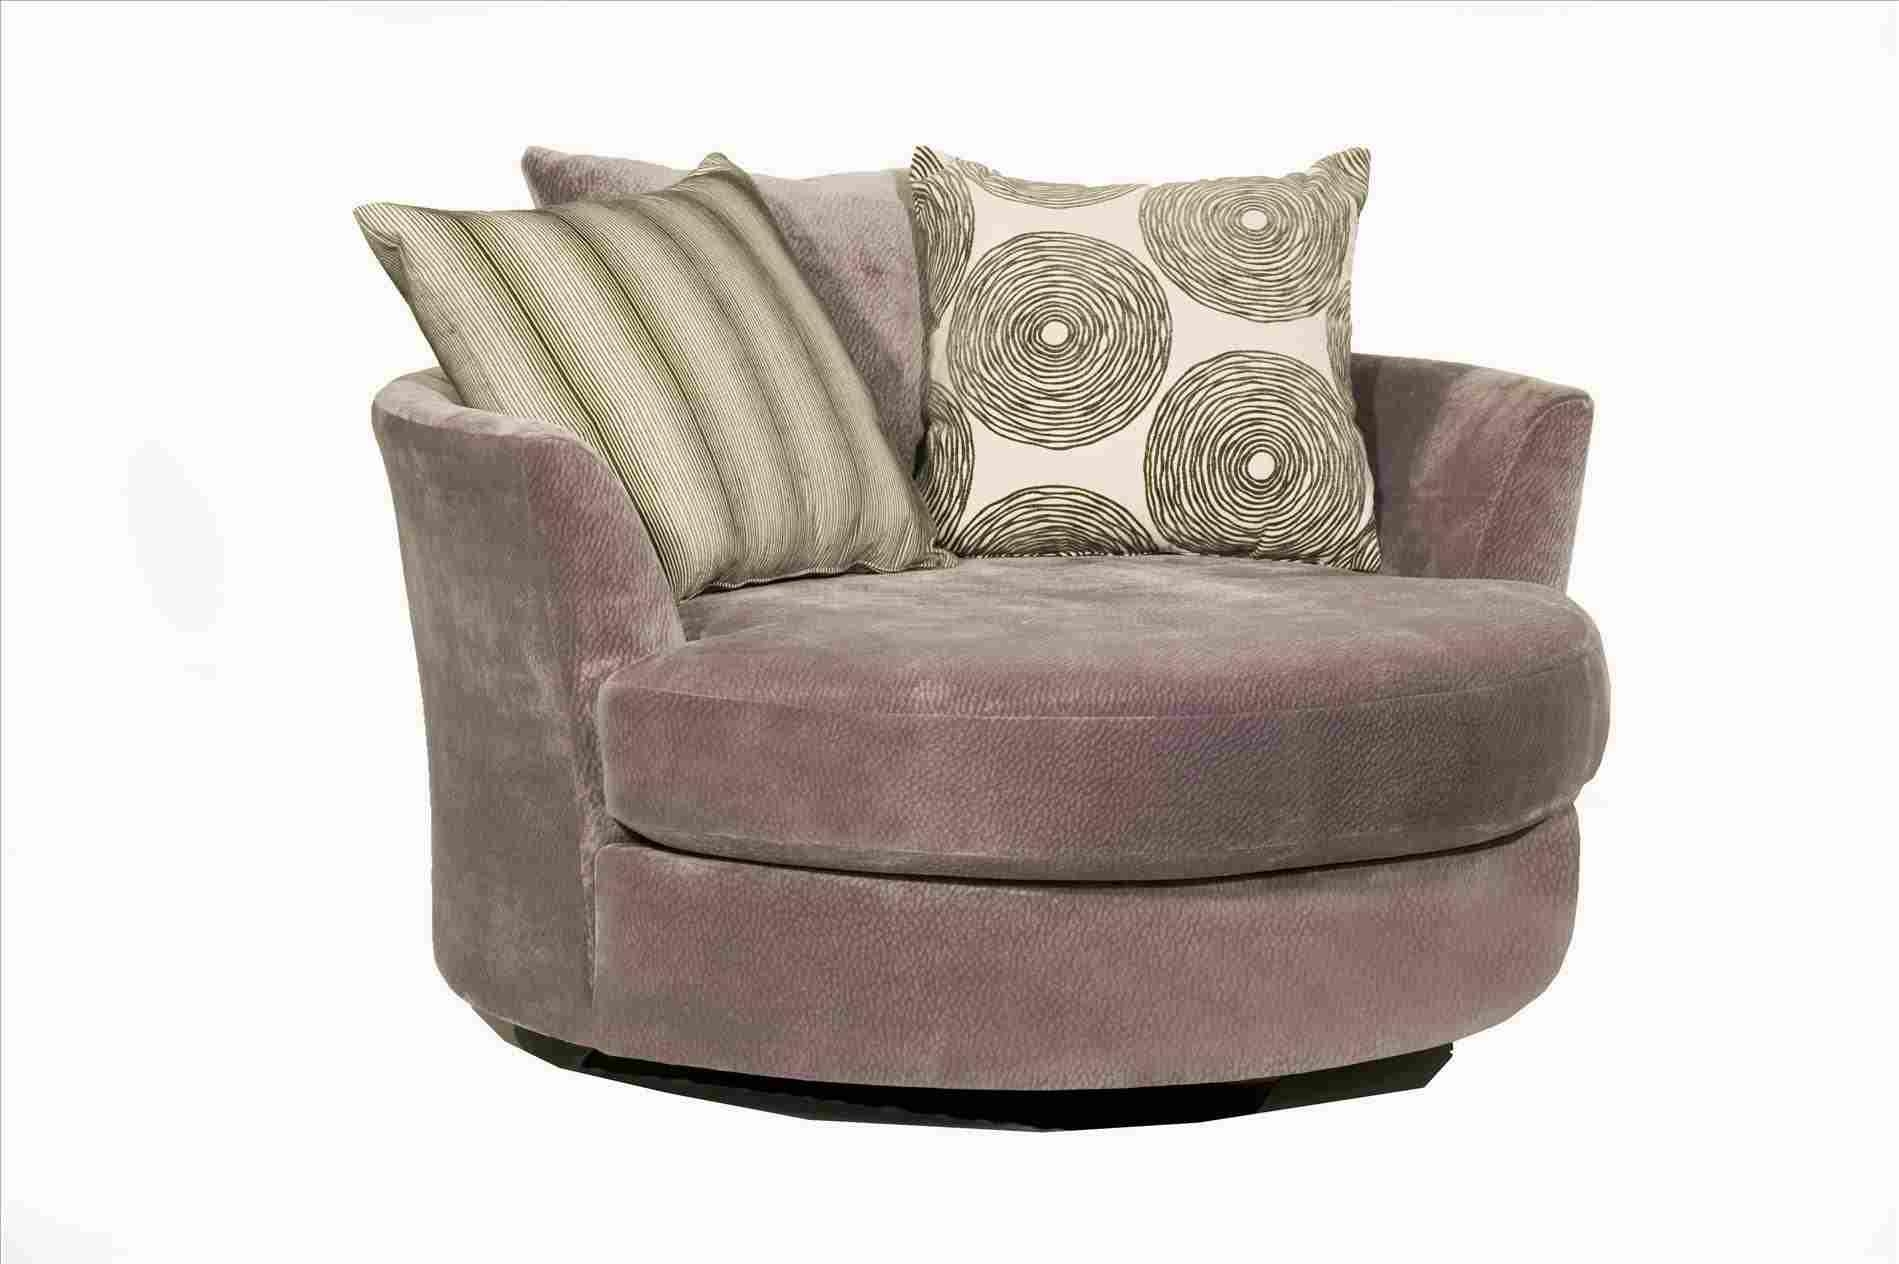 Round Swivel Cuddle Chair Intended For Cuddler Swivel Sofa Chairs (View 10 of 20)